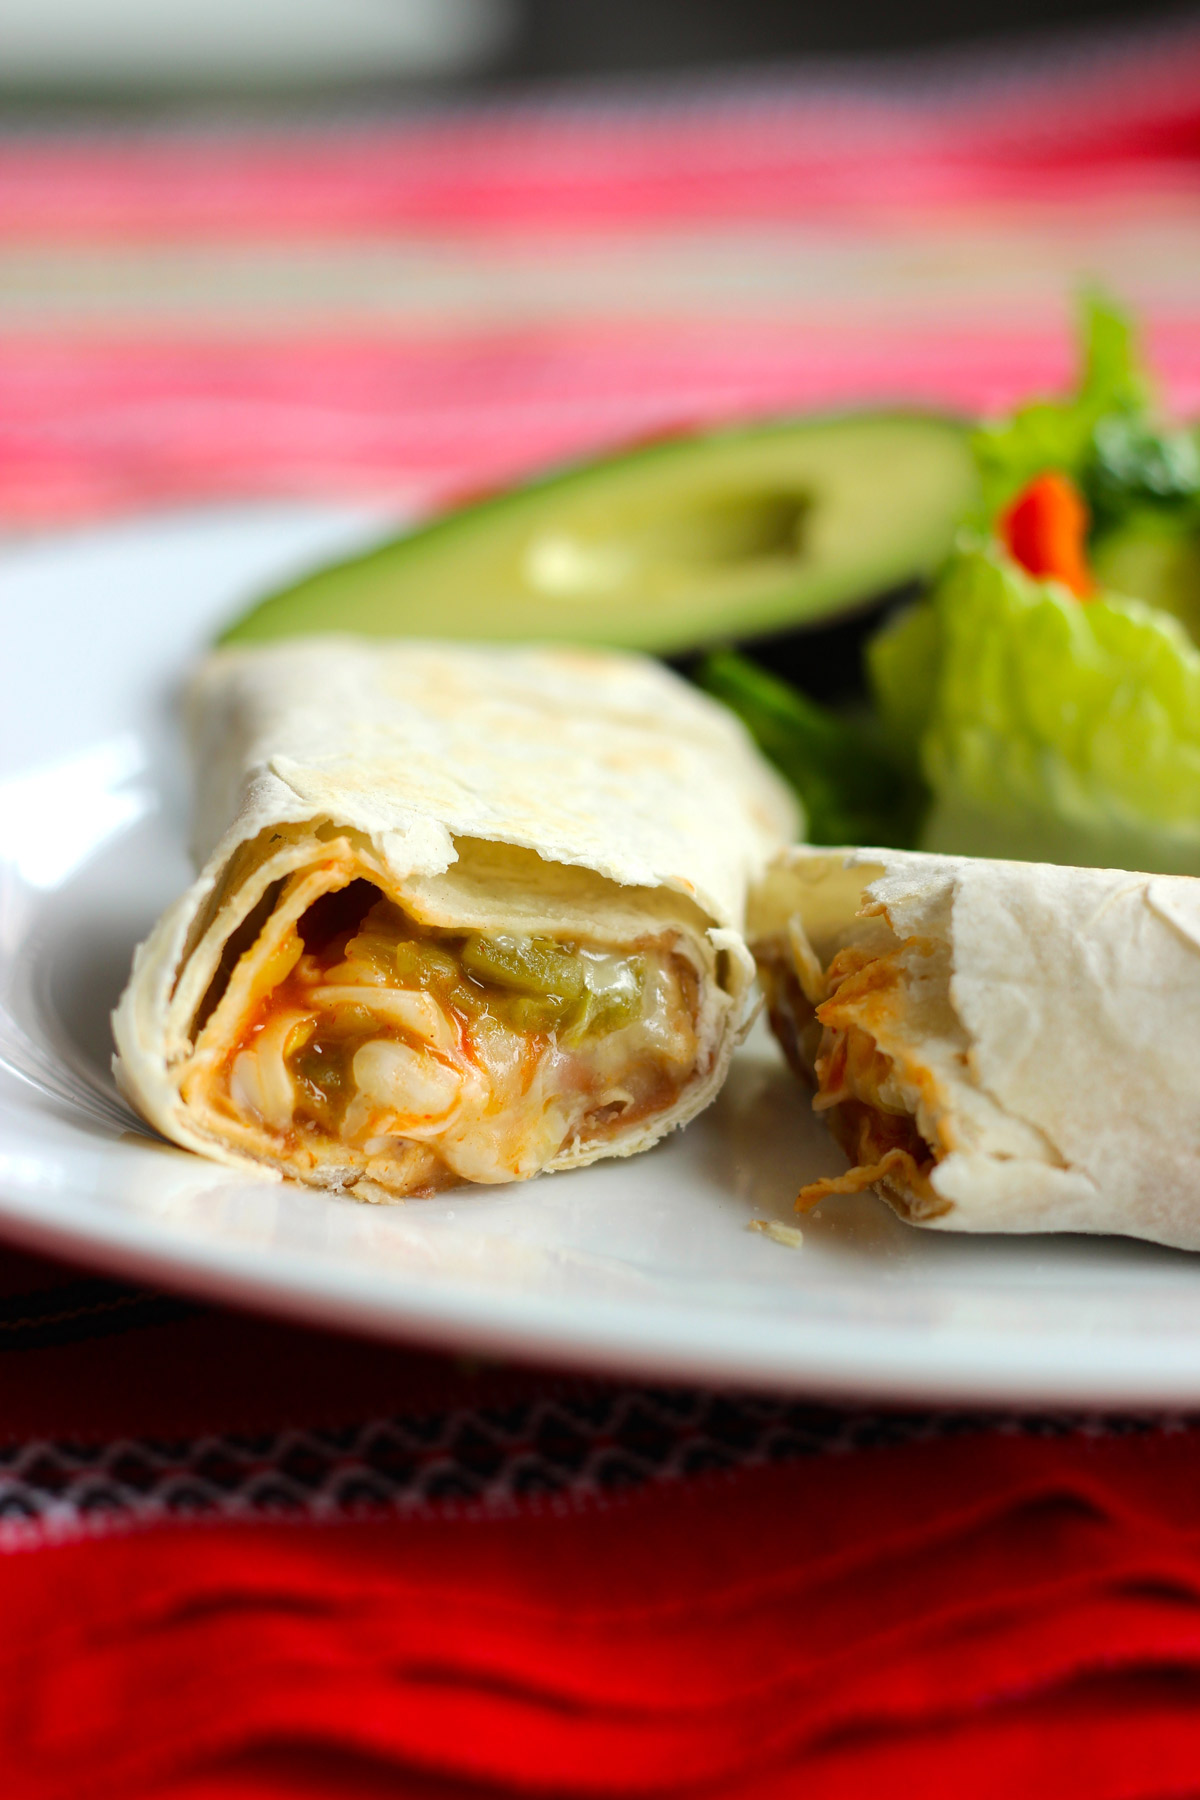 green chile burrito cut in halves on white plate with avocado and salad in background.